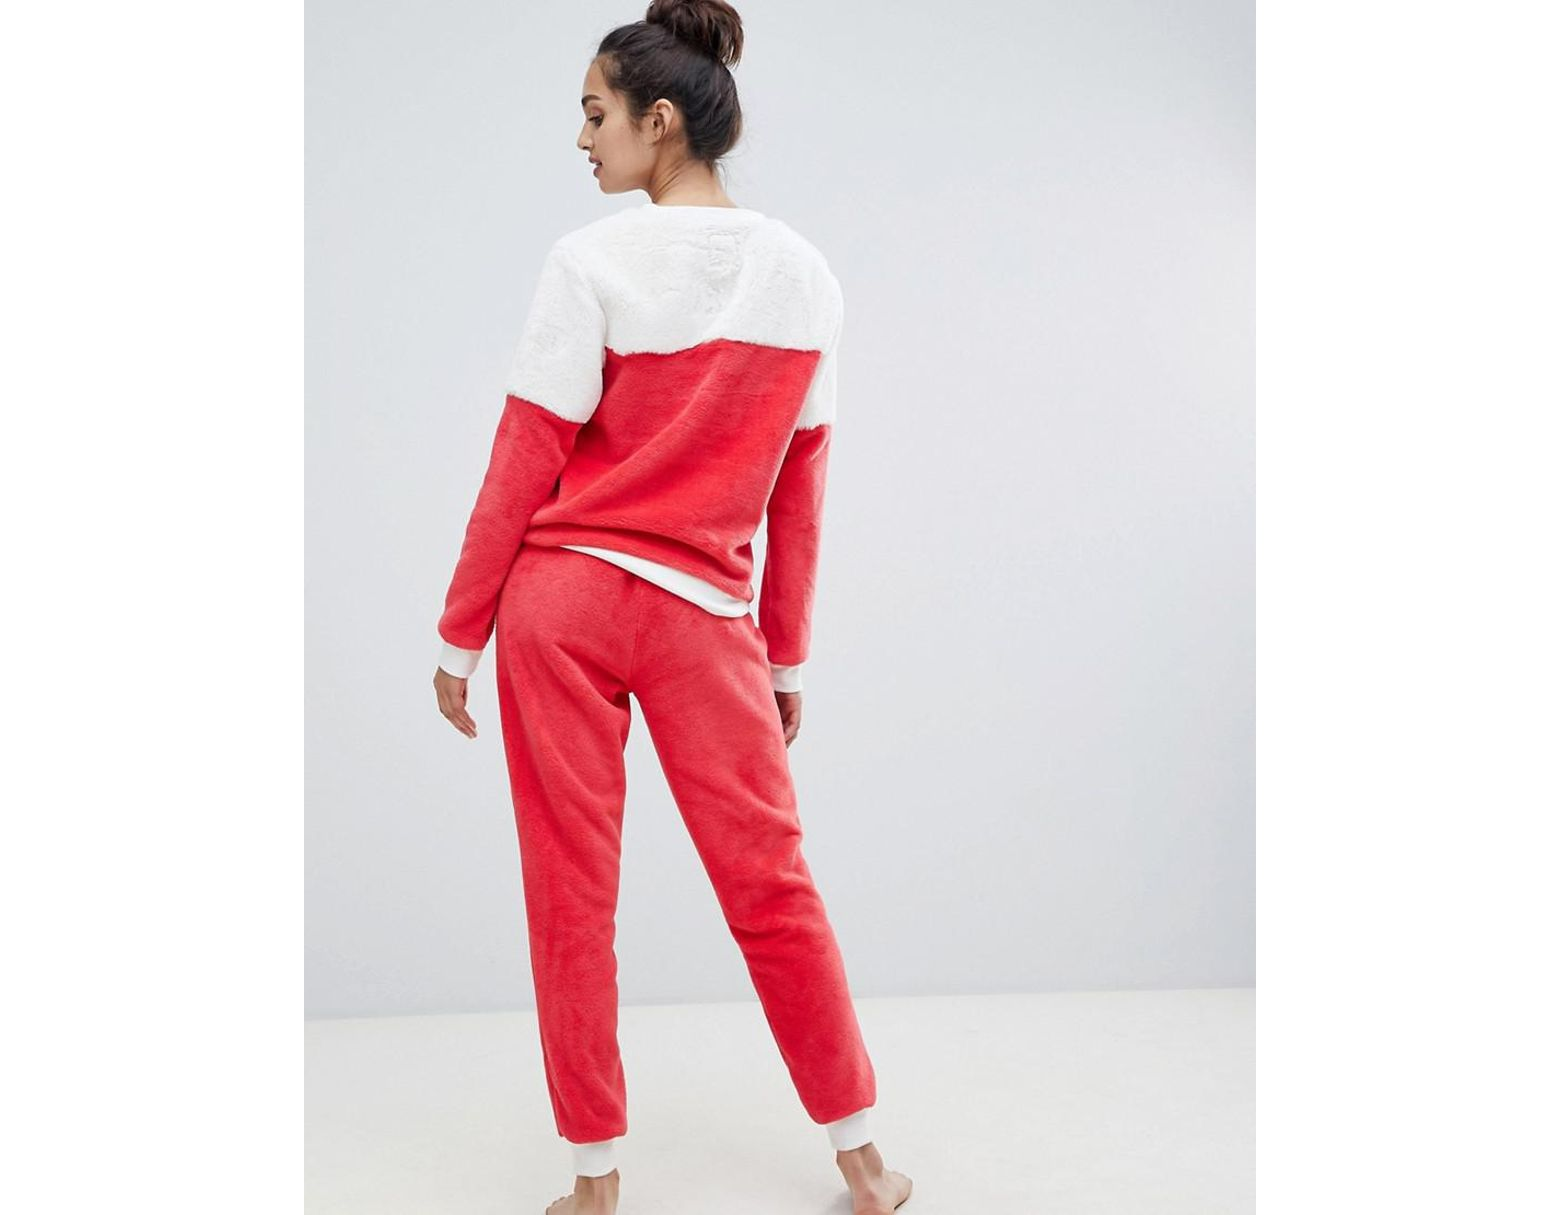 37c915edd232c Chelsea Peers The Snuggle Is Real Fluffy Pajama Set in Red - Lyst